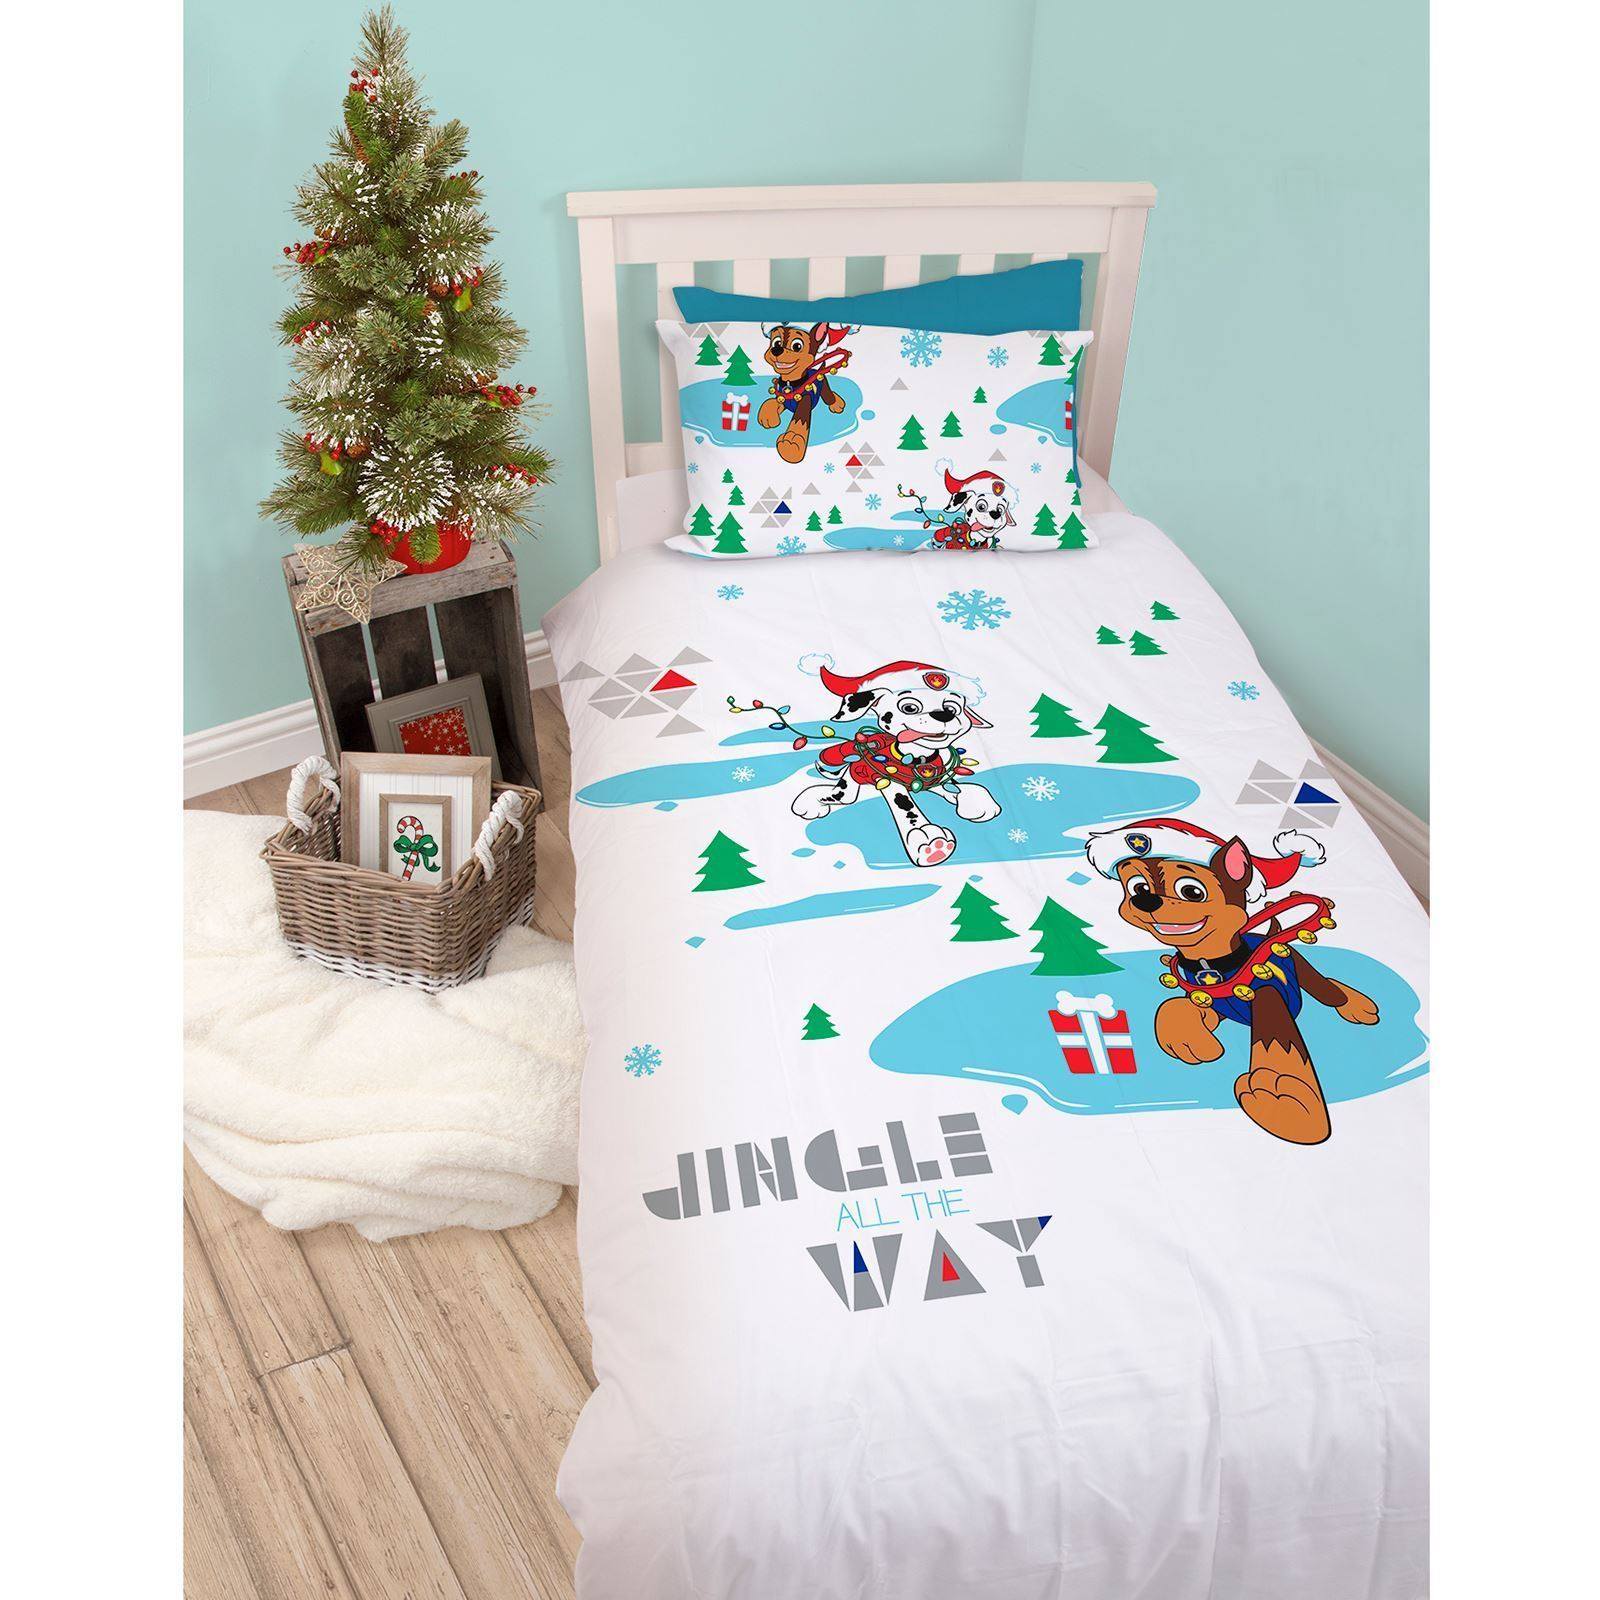 Official-Paw-Patrol-Licensed-Duvet-Covers-Single-Double-Chase-Skye-Marshall thumbnail 11